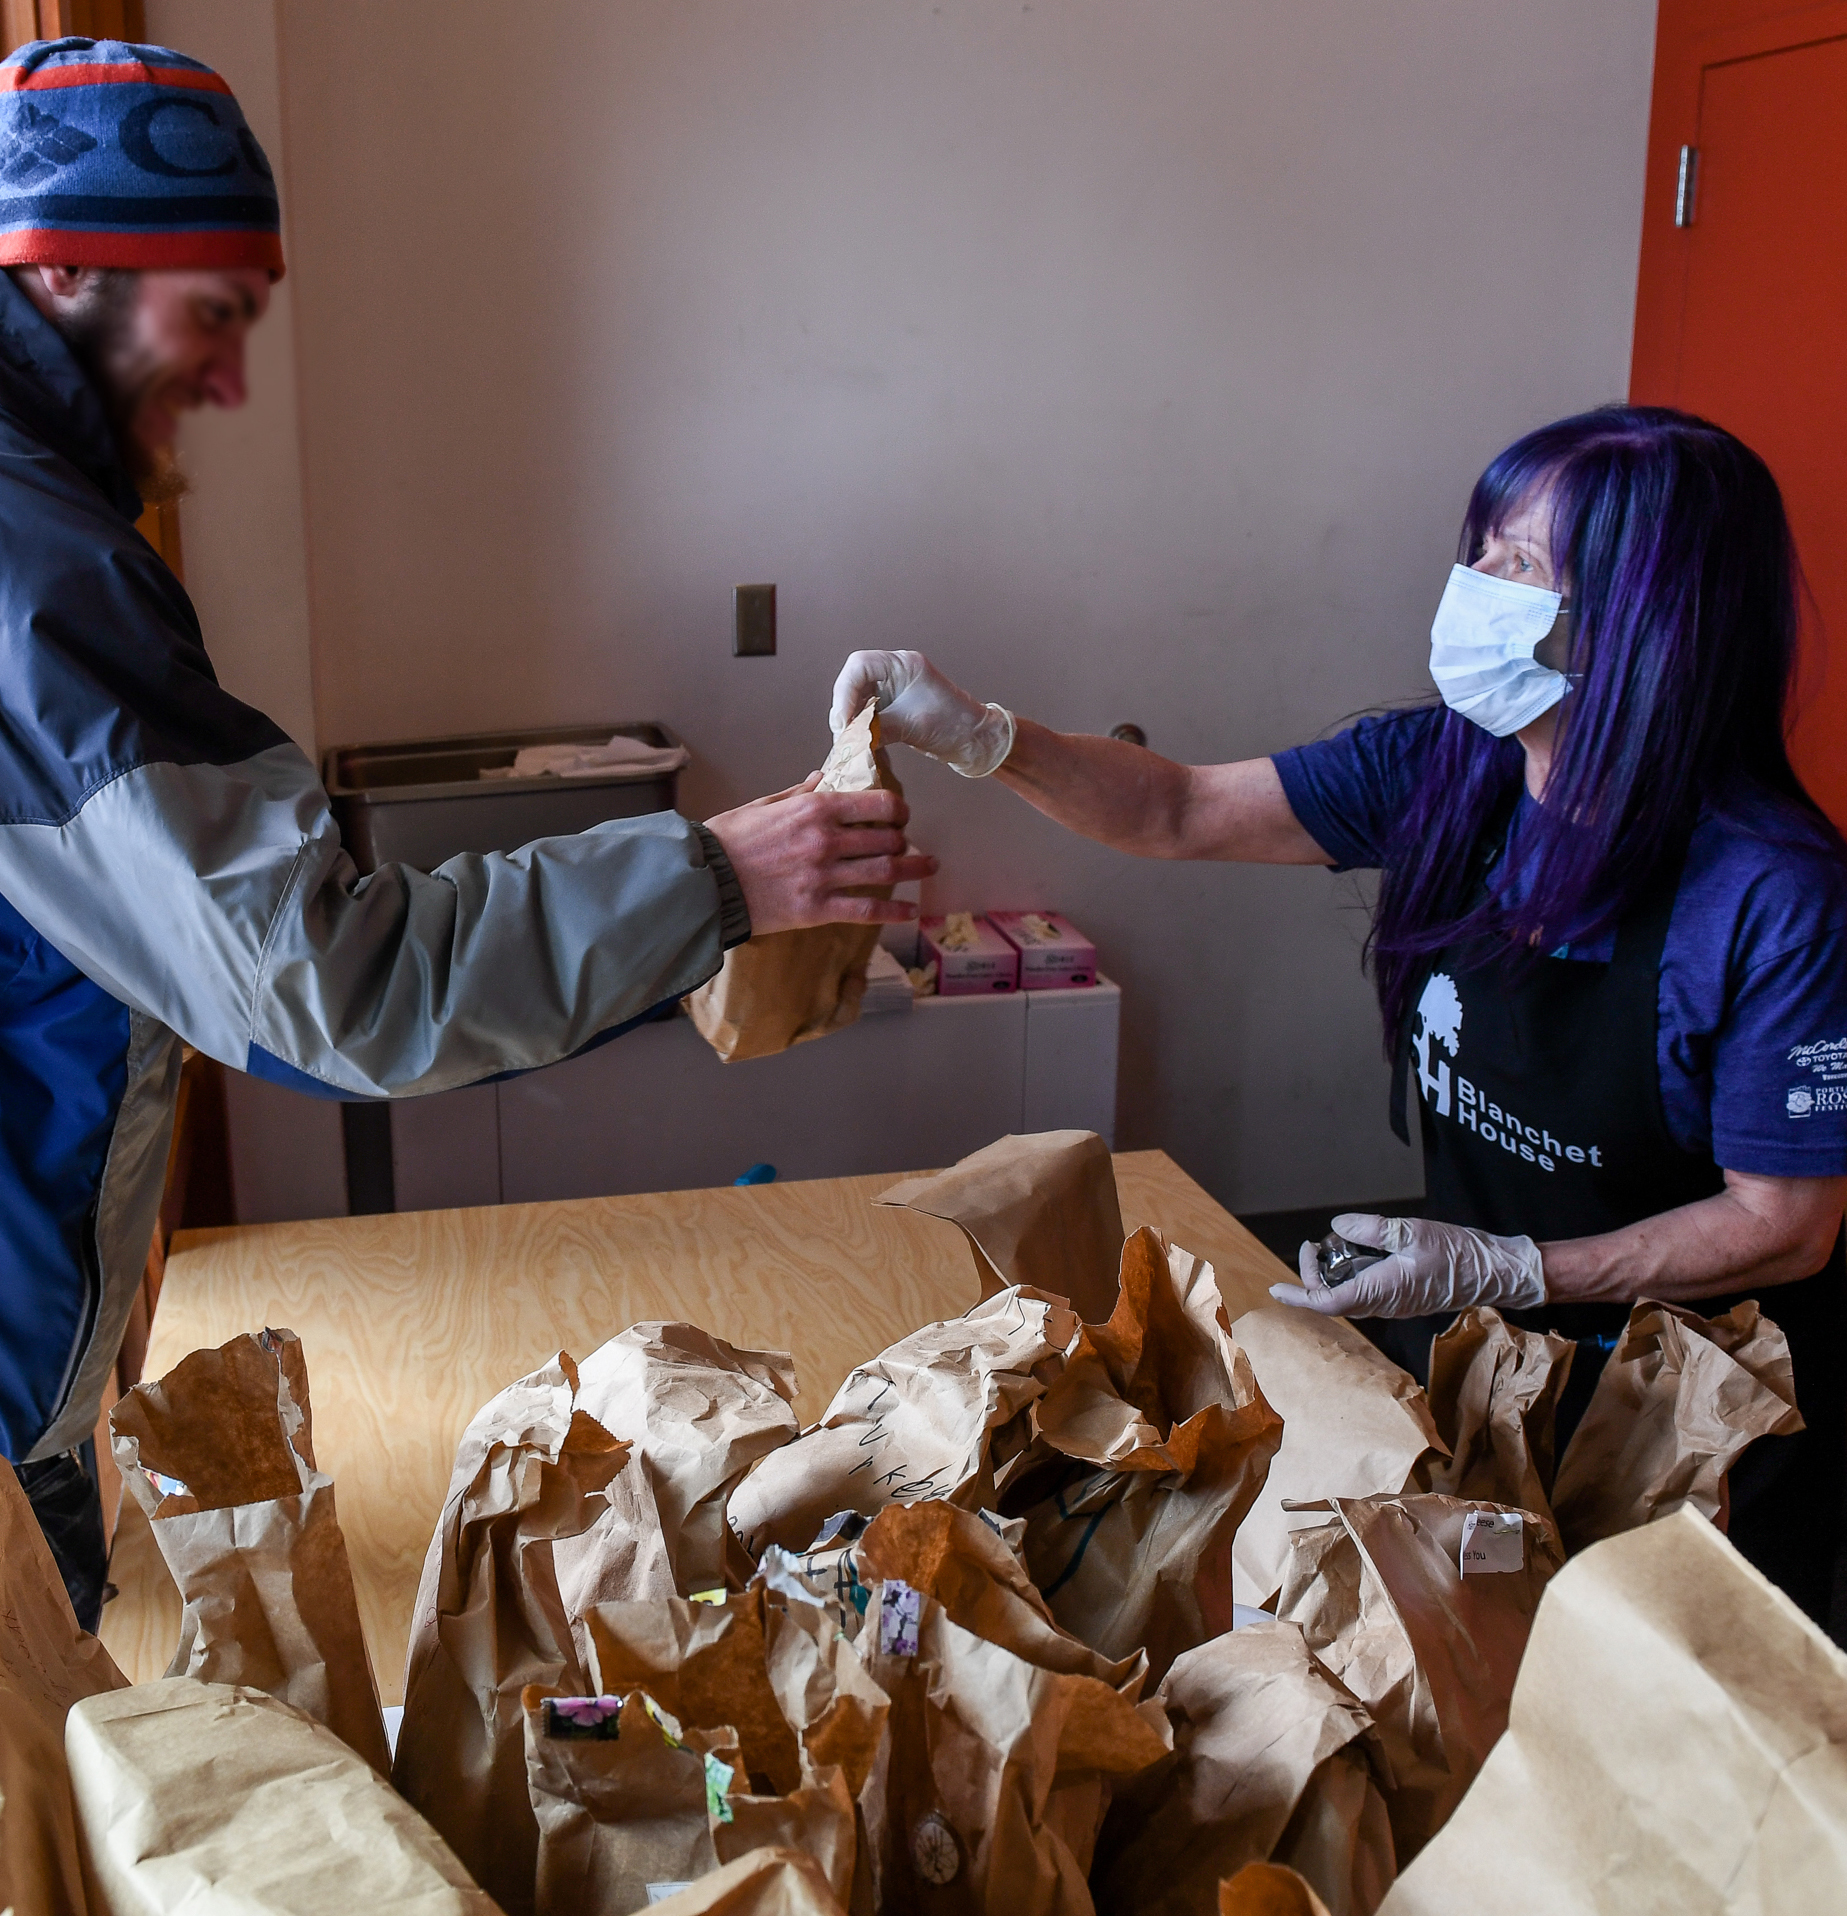 Josi Whitney volunteers to serve lunch at Blanchet House of Hospitality during the COVID19 pandemic in Portland, Oregon. Photo by Justin Katigbak.